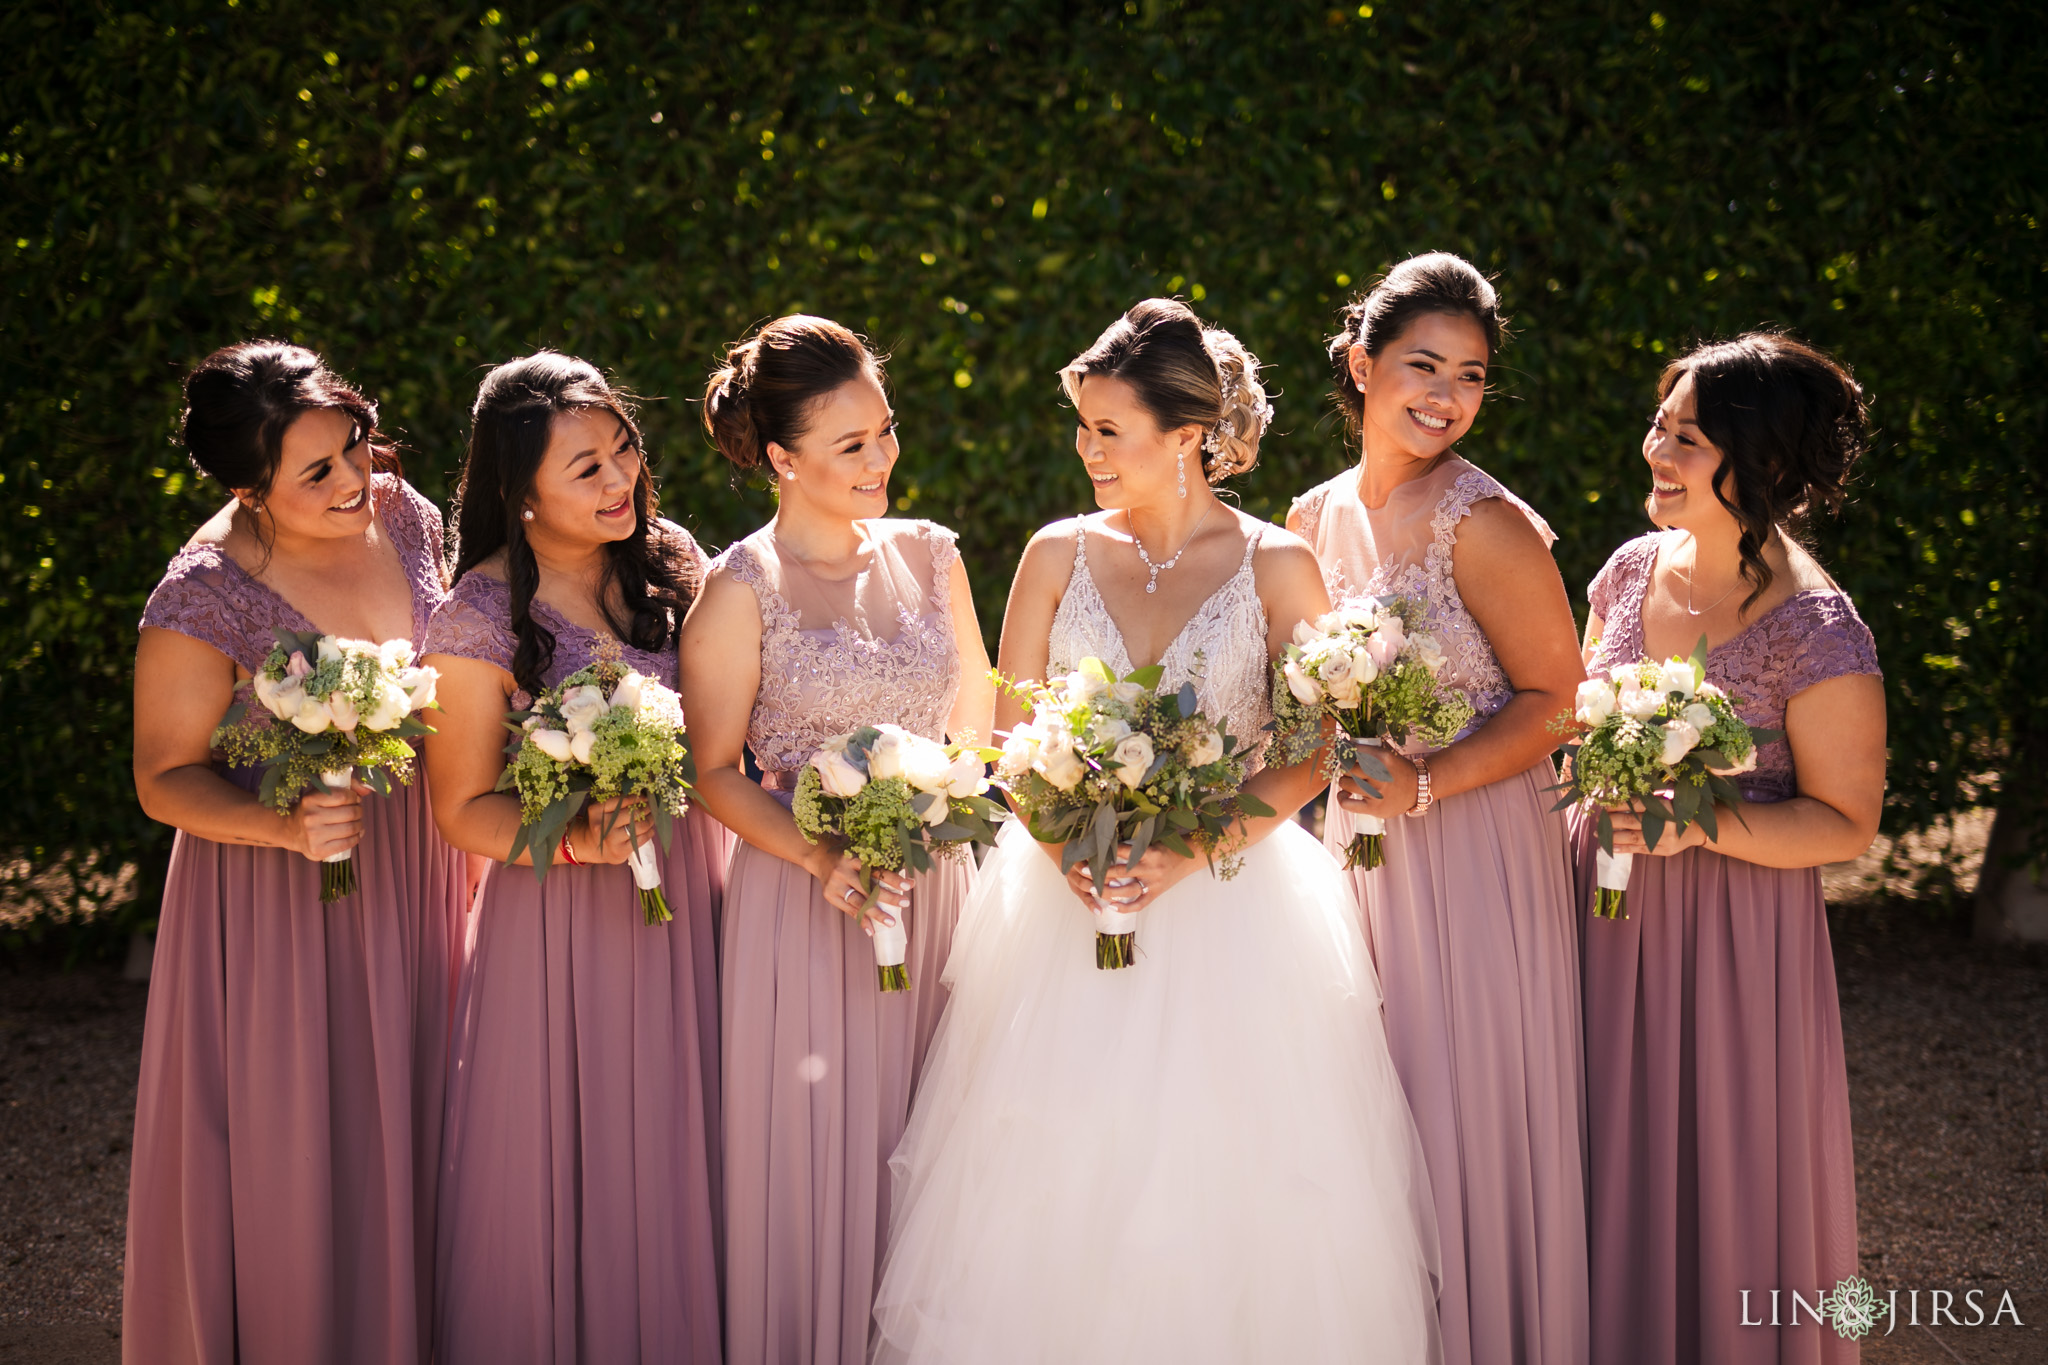 10 Hotel Irvine Orange County Wedding Photography